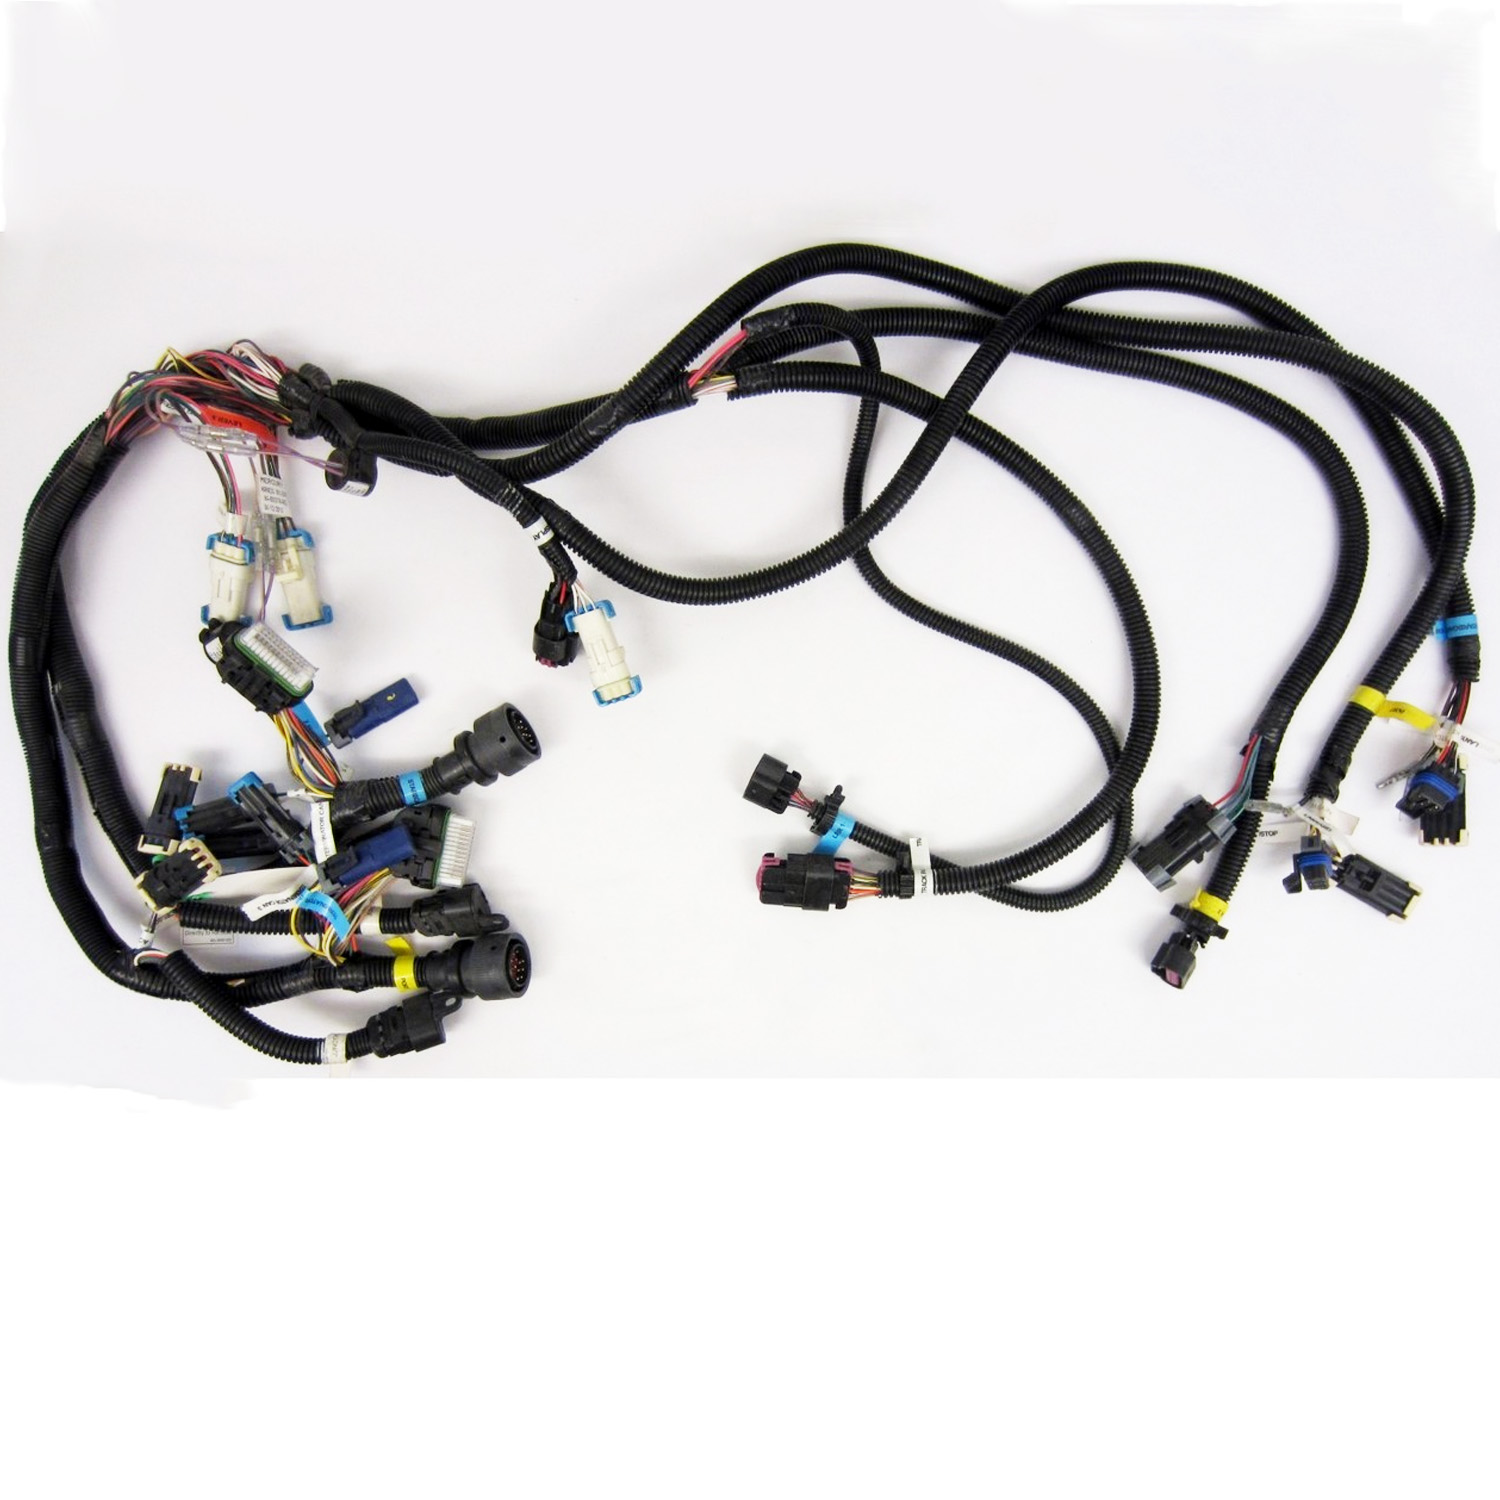 Engine Wiring Harness Electrical Diagram Schematics Subaru Mercury New Oem Smartcraft Dts Verado Dual Wire 84